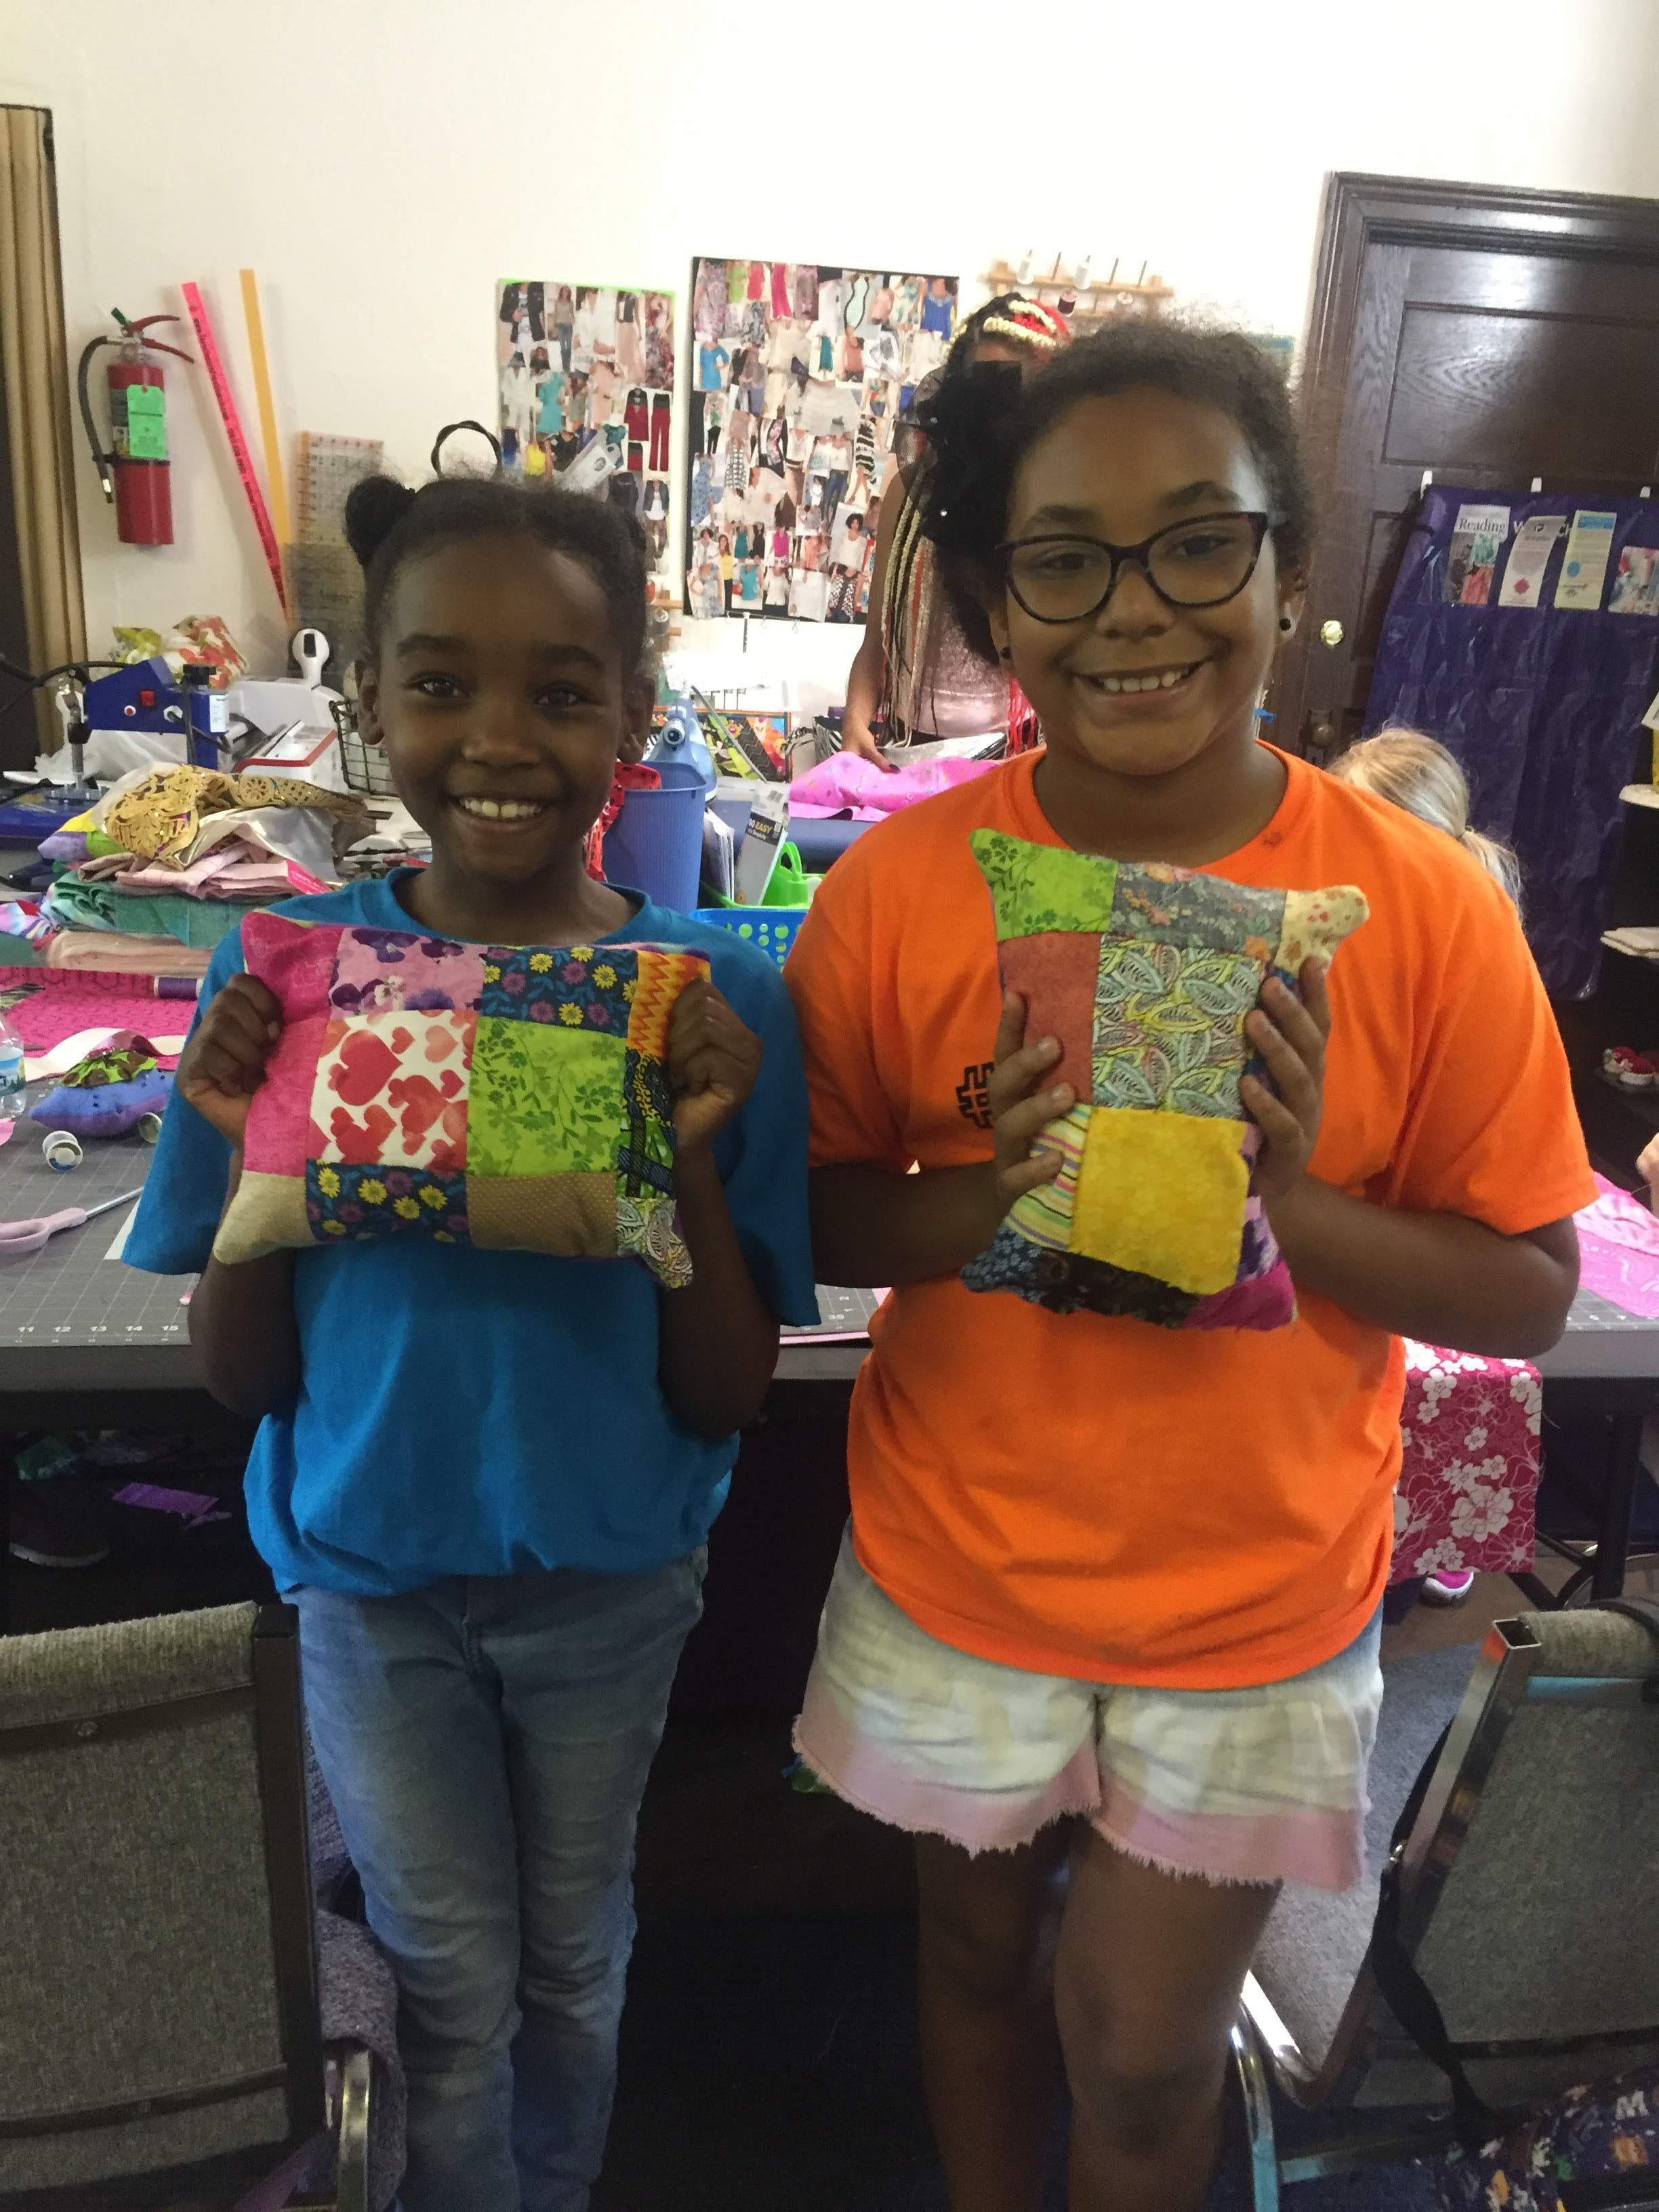 New To Sewing- Kids single session